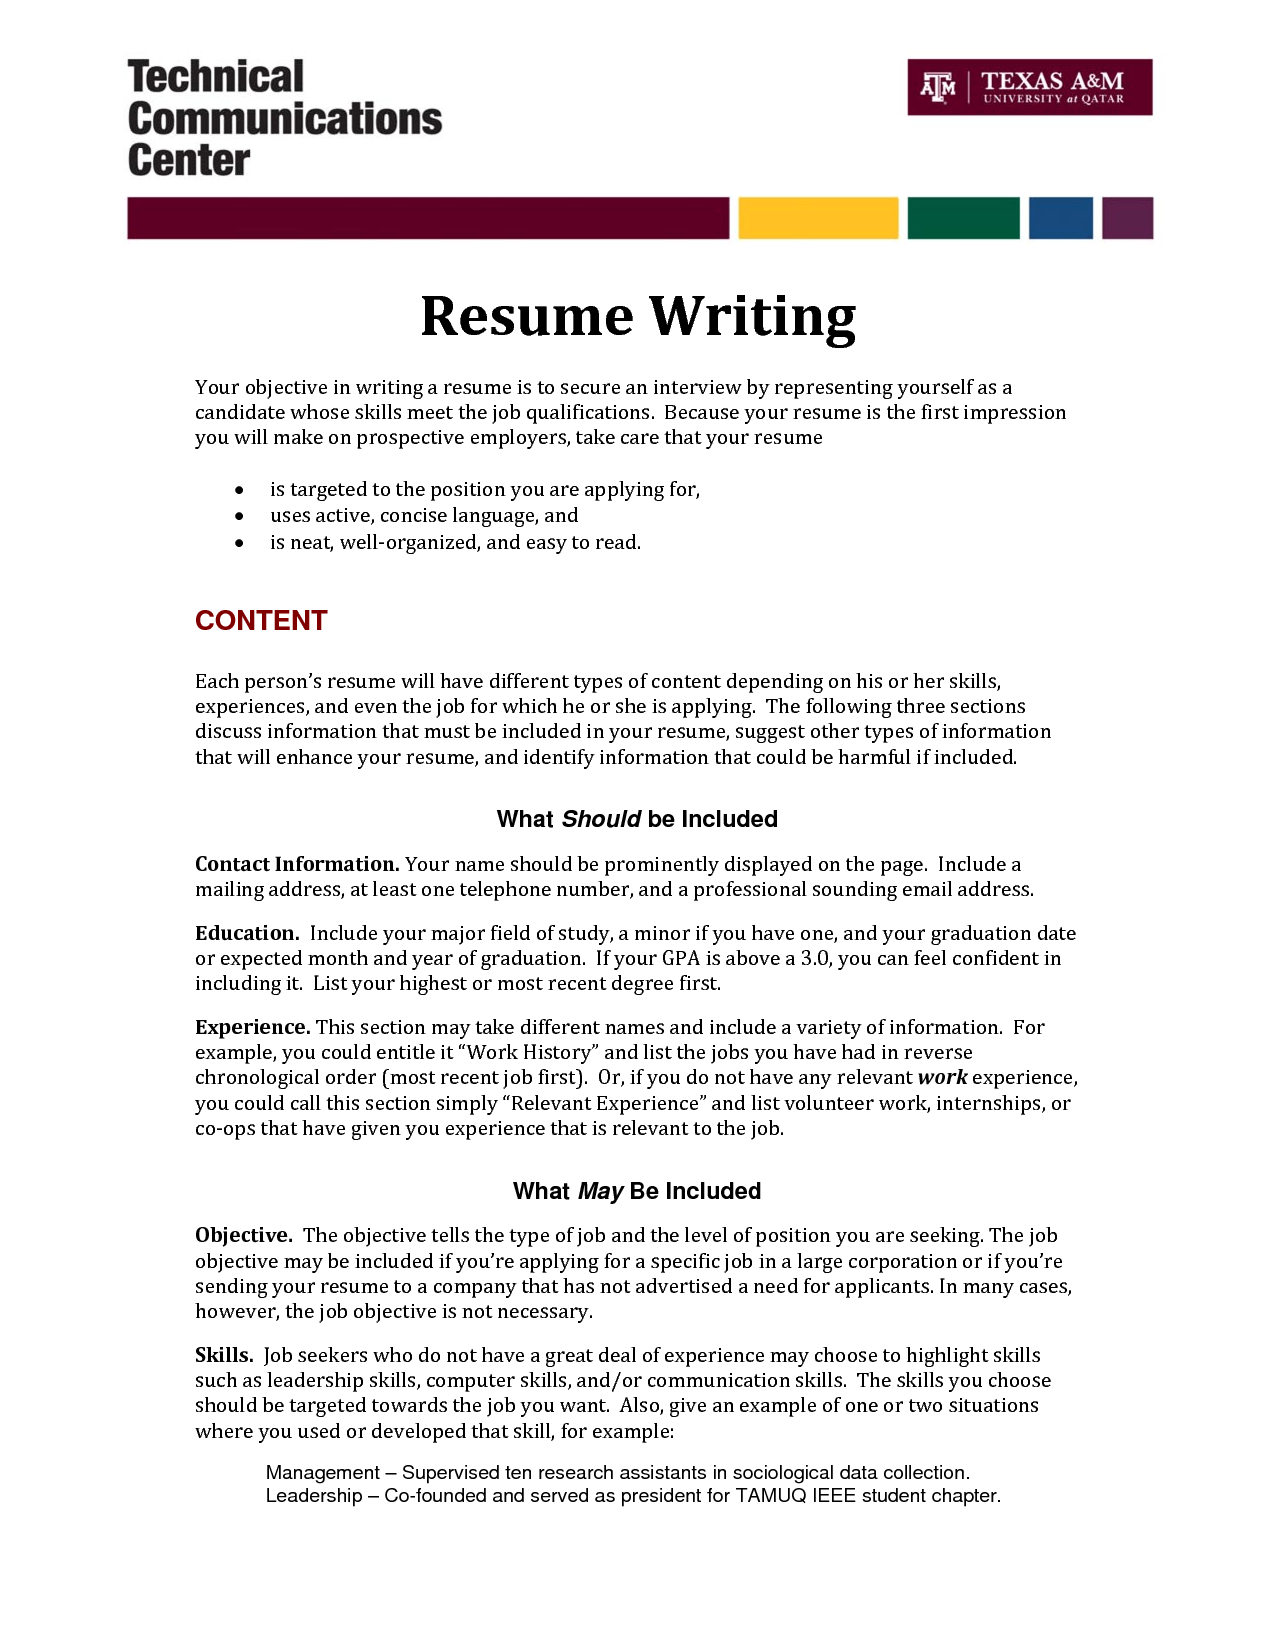 type my resume education section resume writing guide resume ...